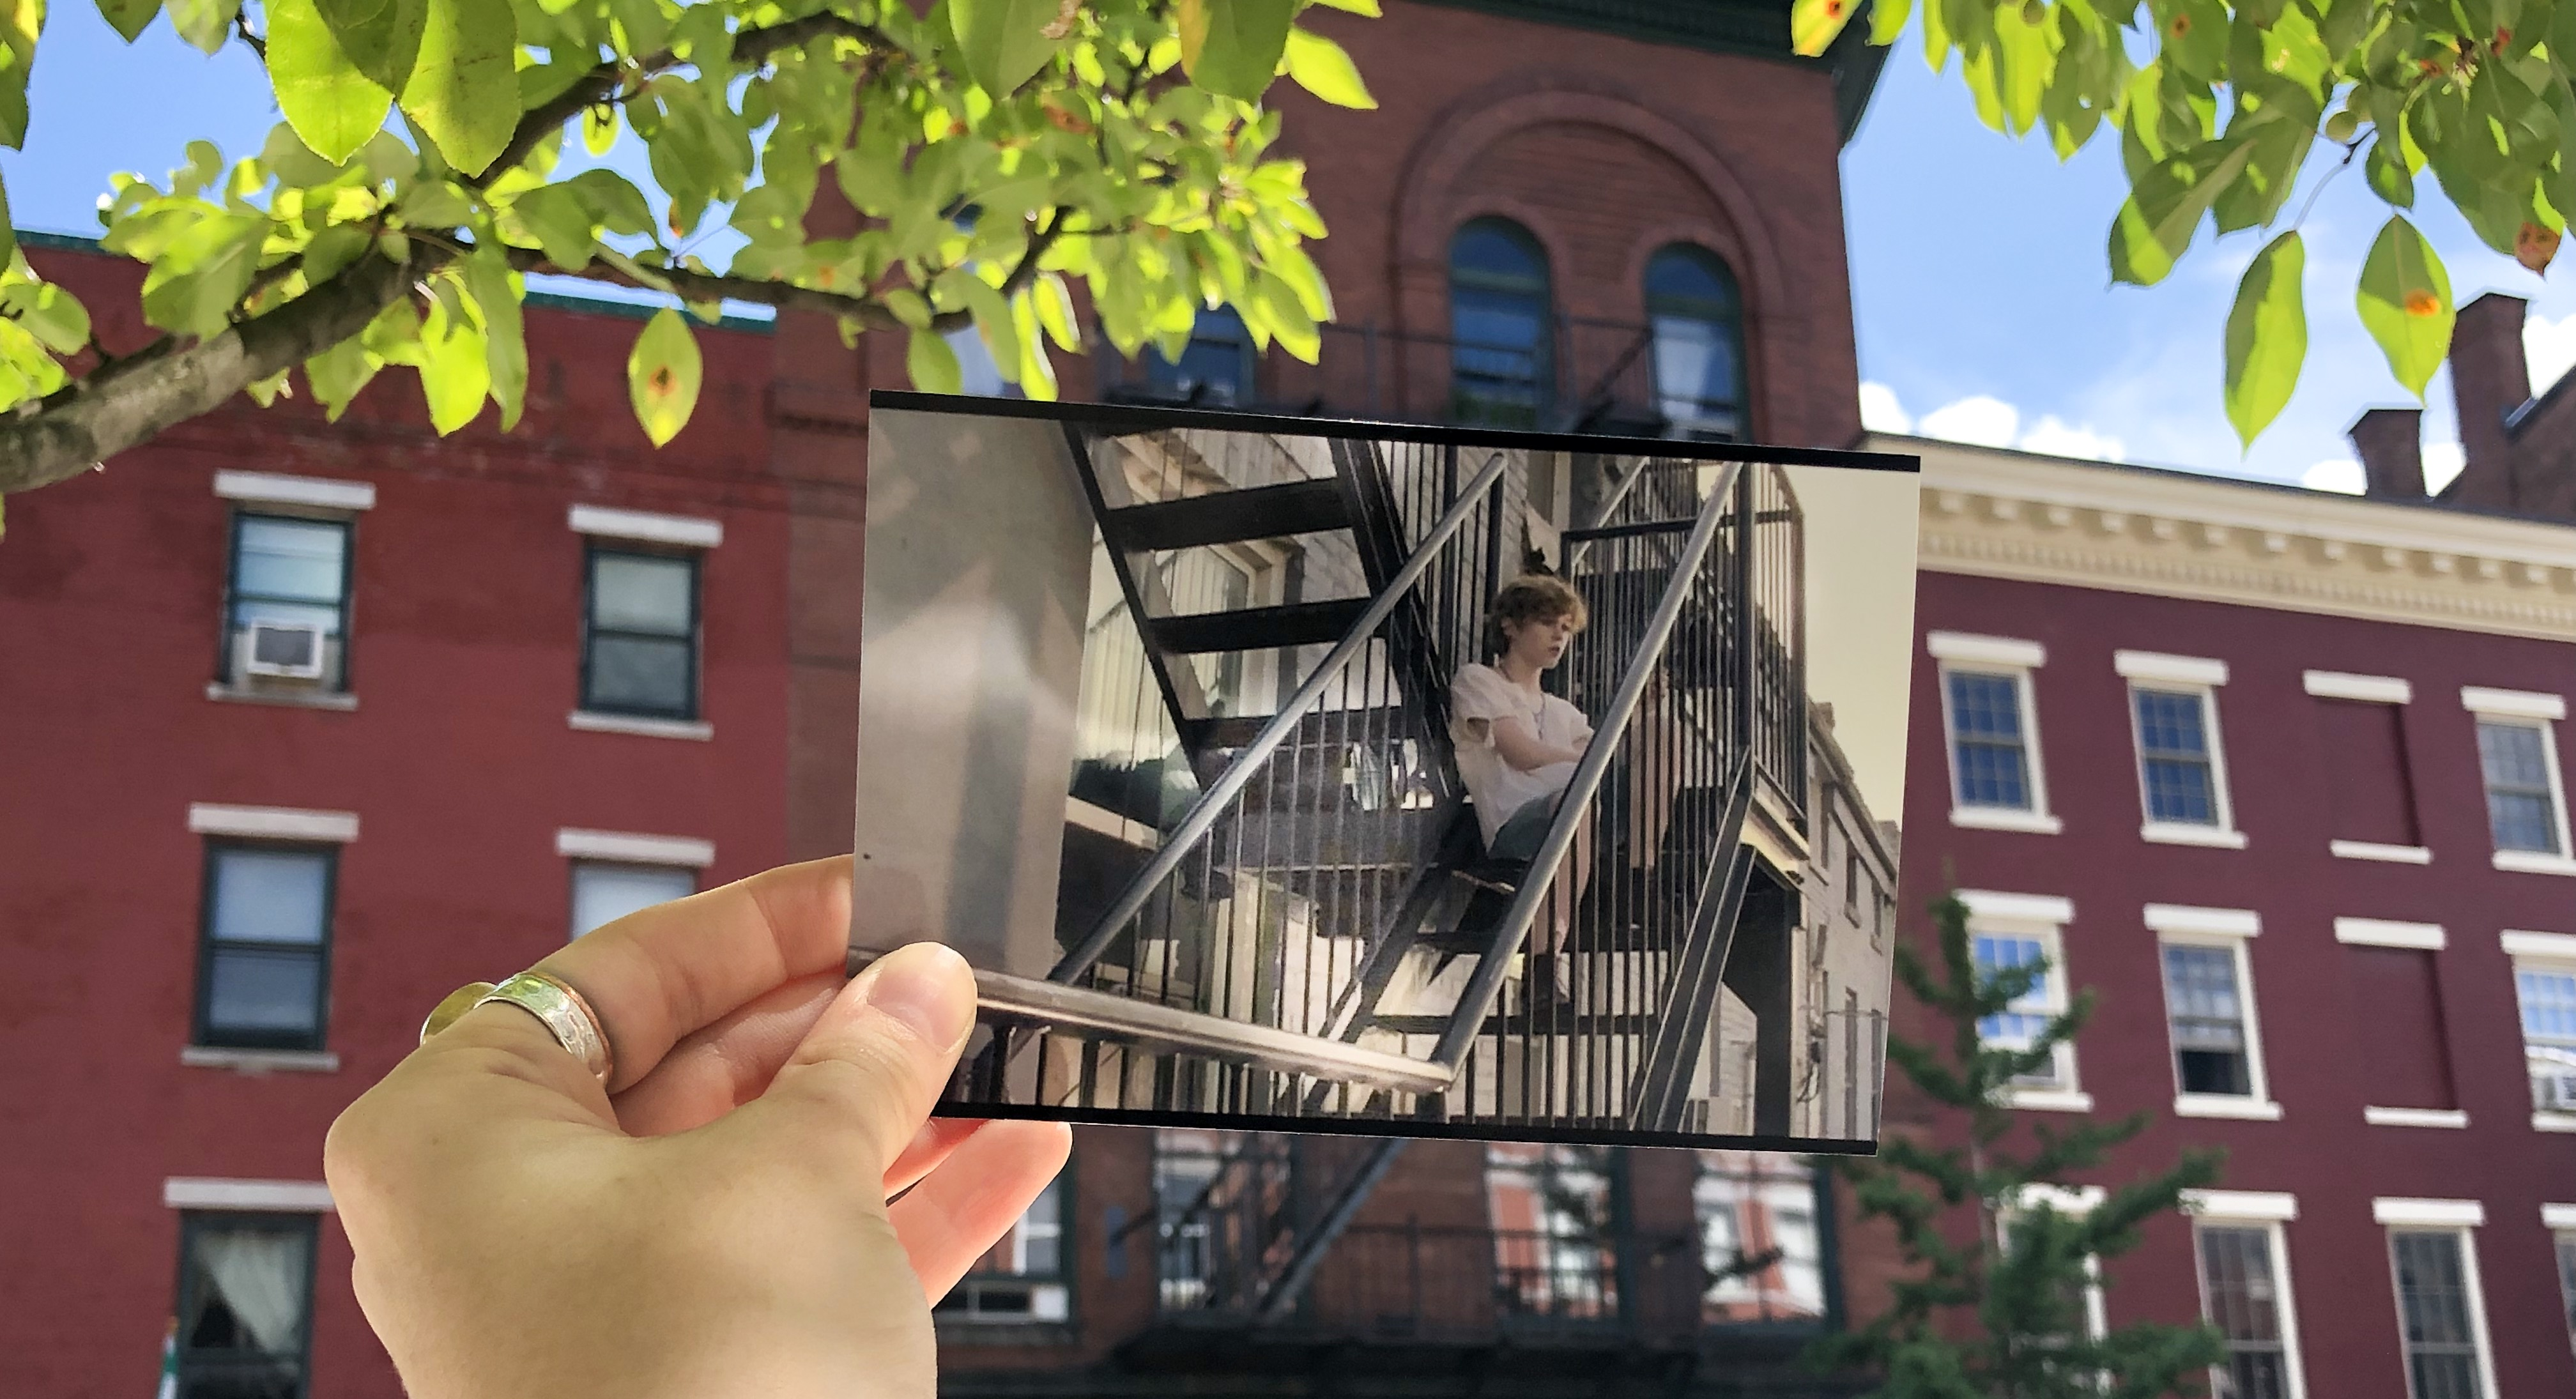 A photo taken from IT 1 of Beverly Marsh sittkng Outside Her Apartment at the actual location that inspired the image.